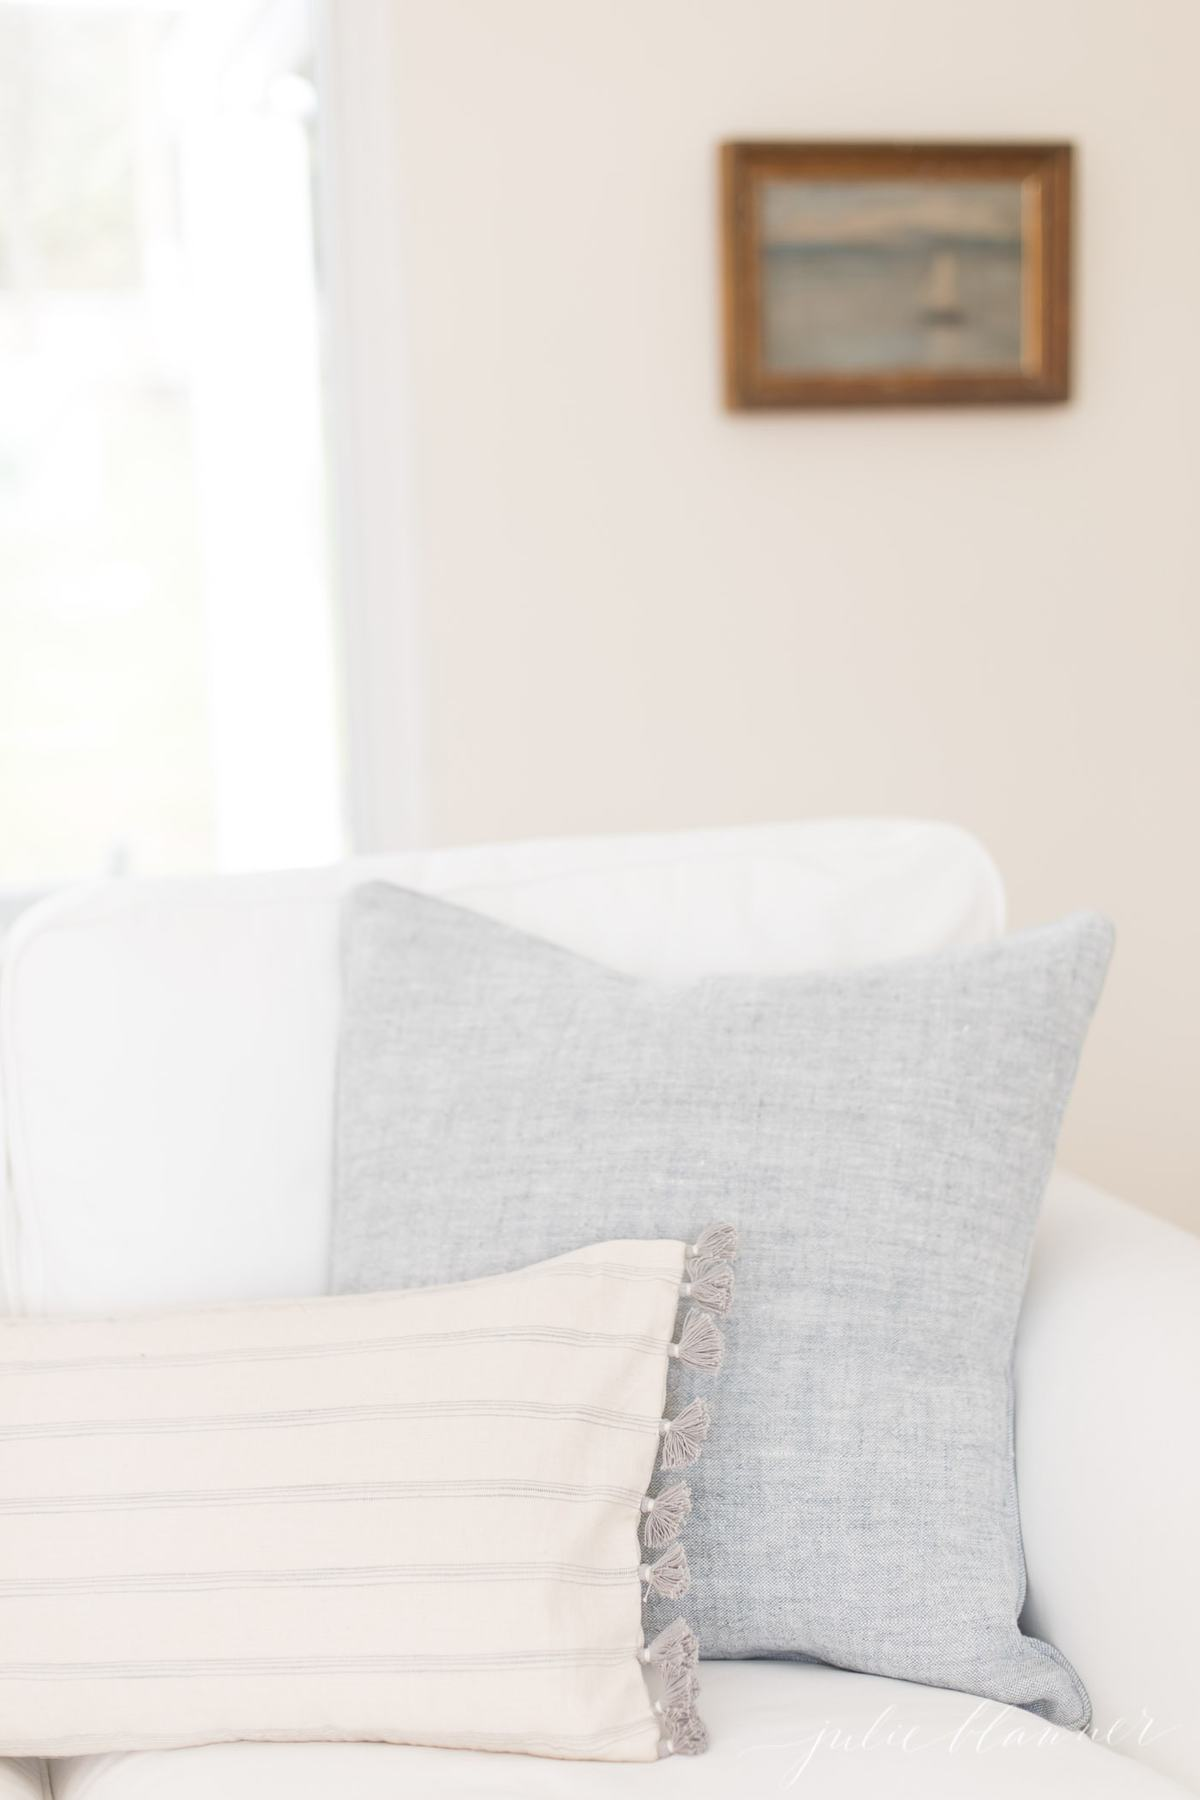 A white sofa with a blue pillow in a living room, in a post about an easy way to get rid of smoke smell